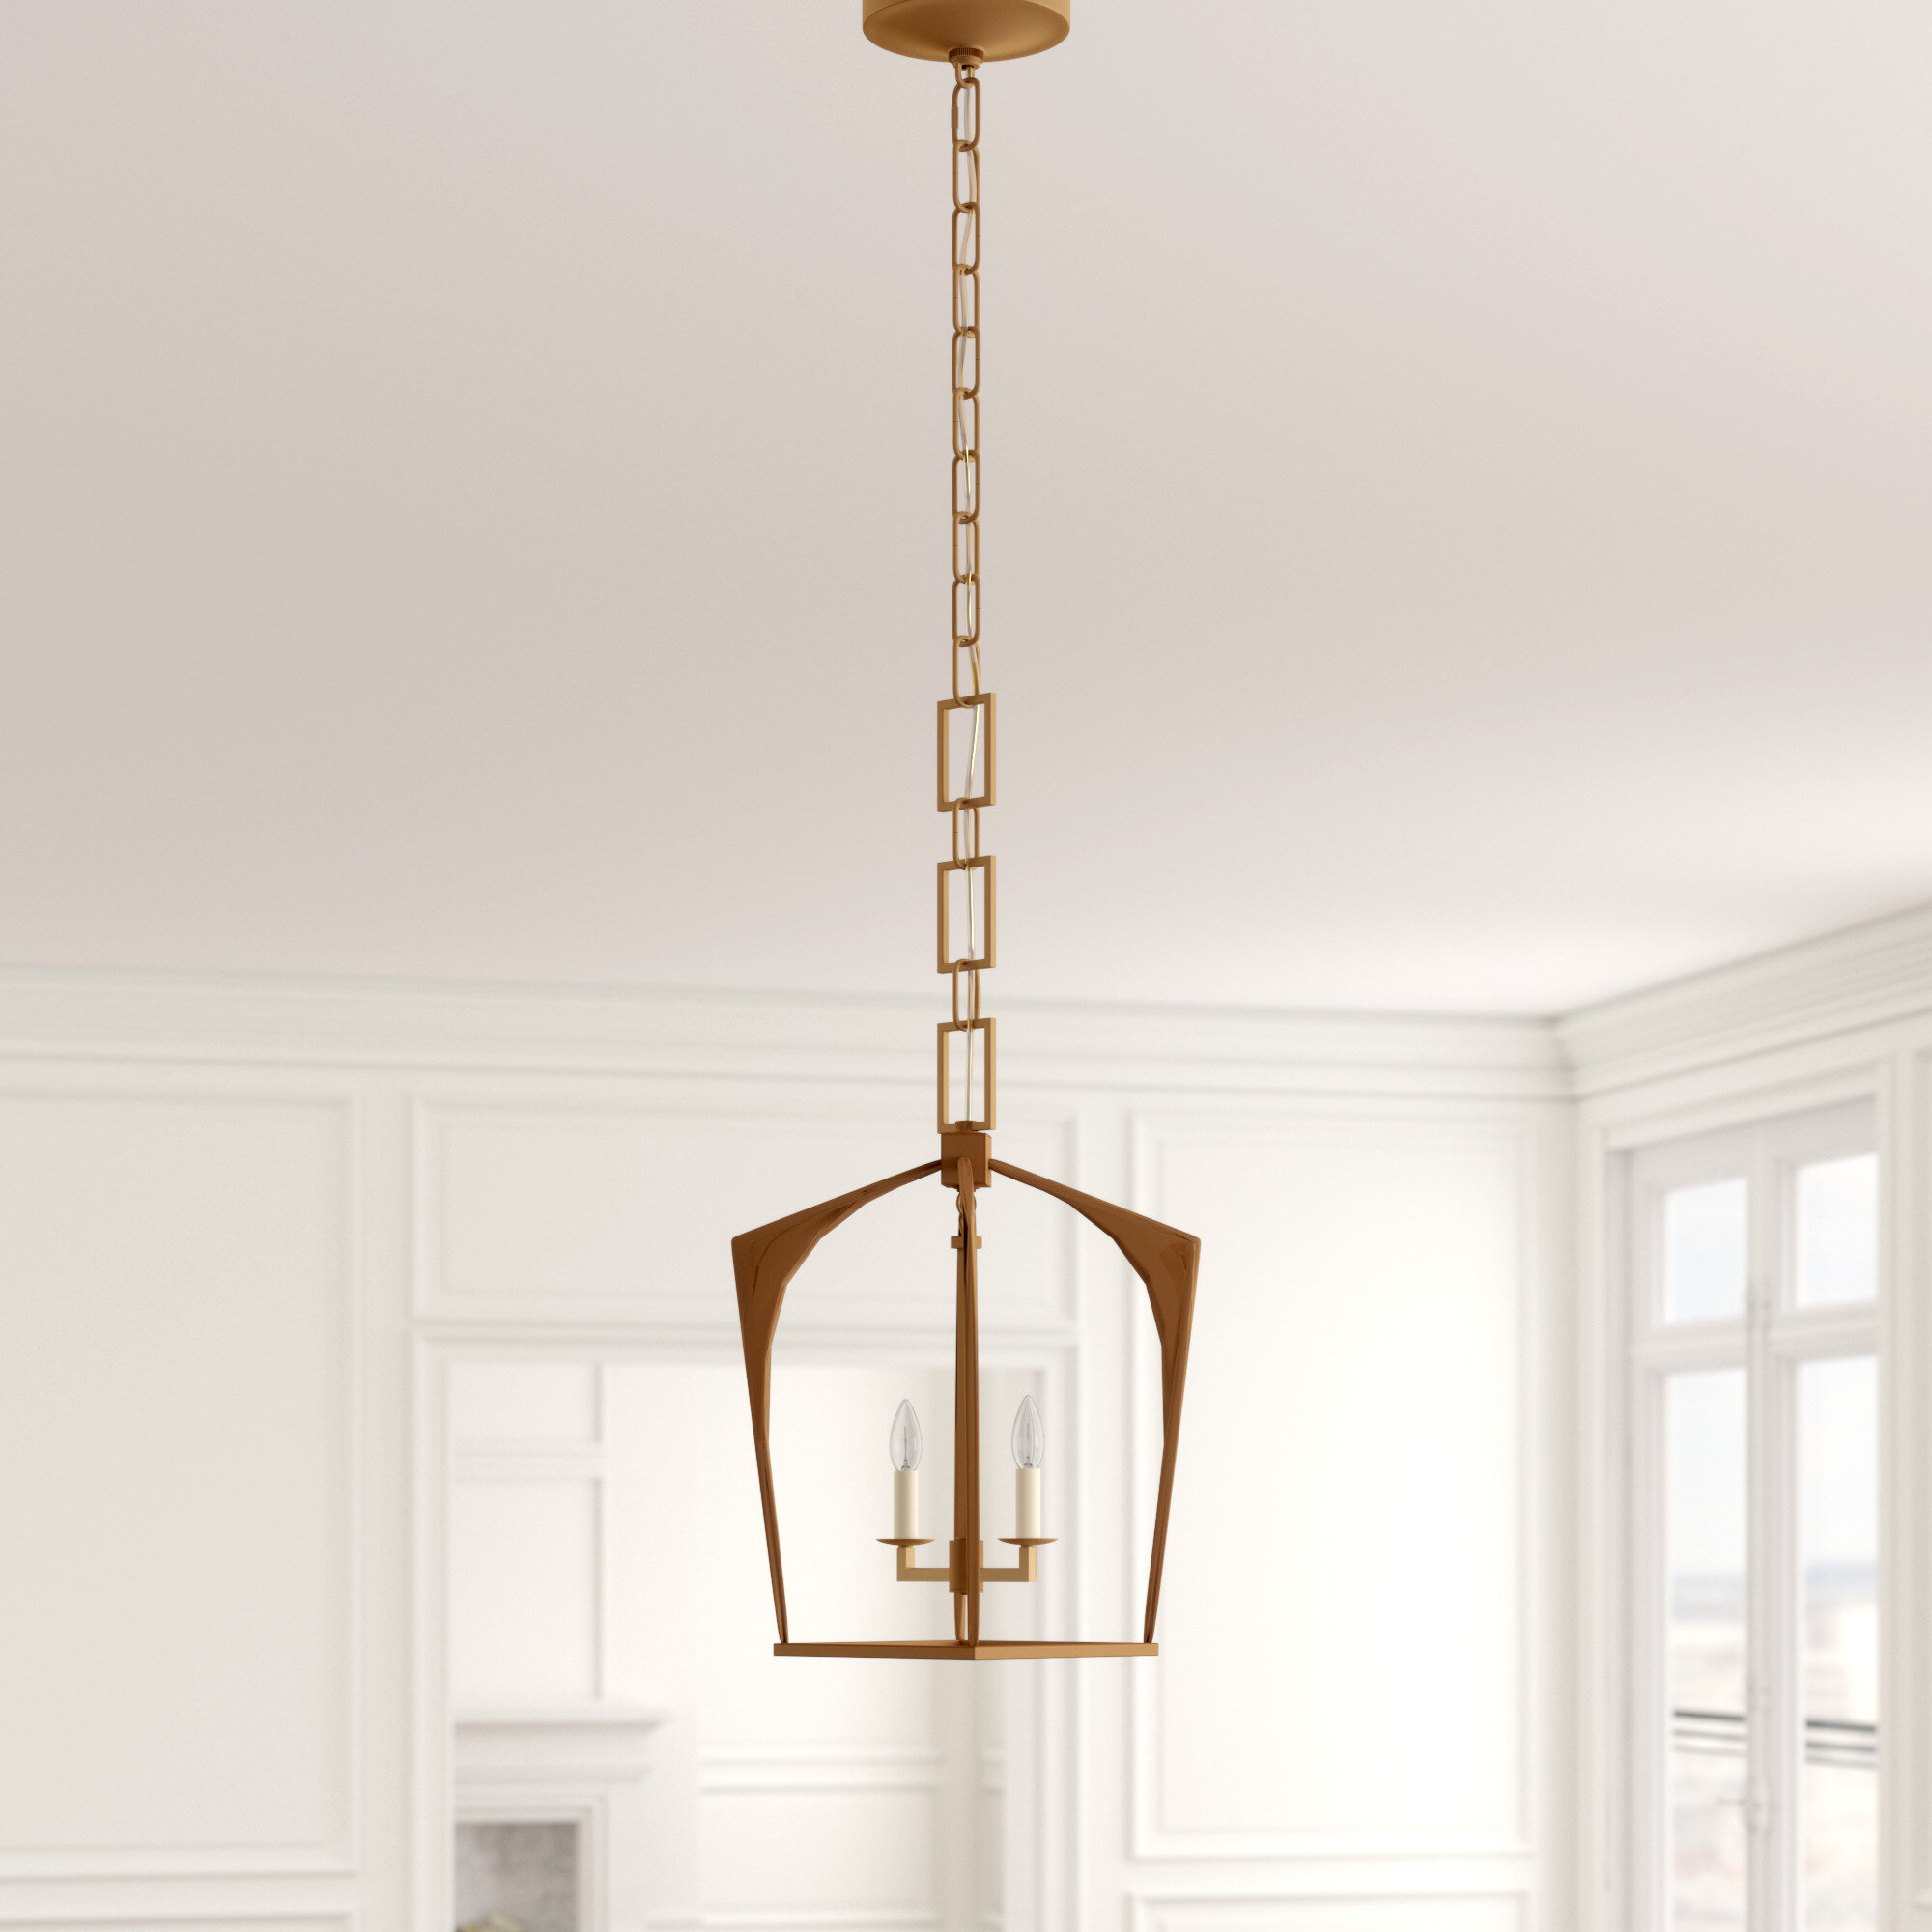 Isoline 2-Light Lantern Geometric Pendant with regard to Isoline 2-Light Lantern Geometric Pendants (Image 16 of 30)